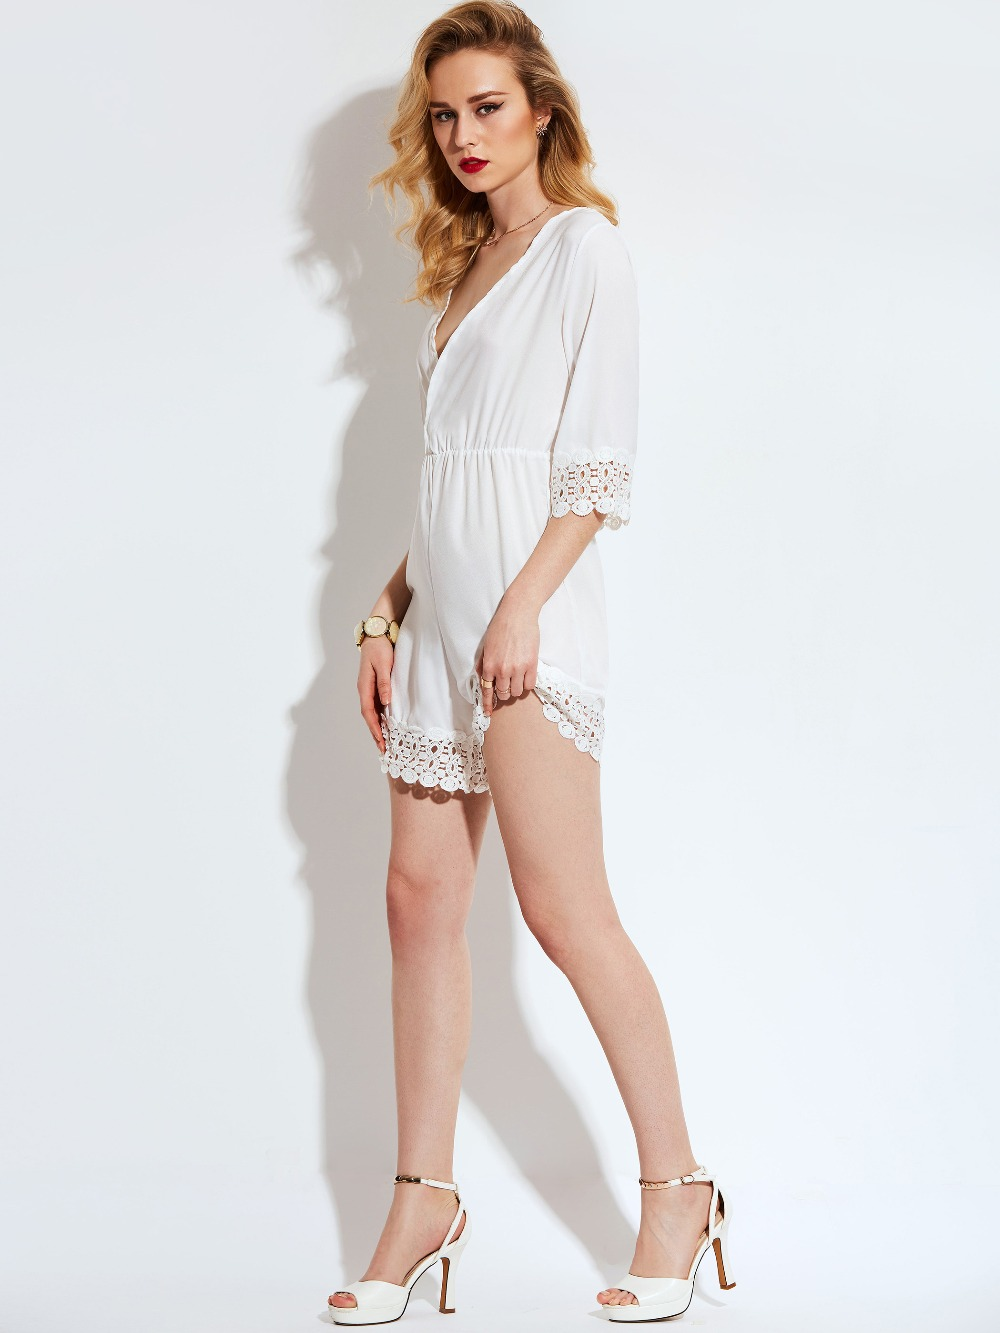 4f4608adda2 Vintacy Women White lace playsuits short V Neck Sexy Jumpsuits Romper  Summer Ladies half sleeve loose Casual Jumpsuits Playsuit